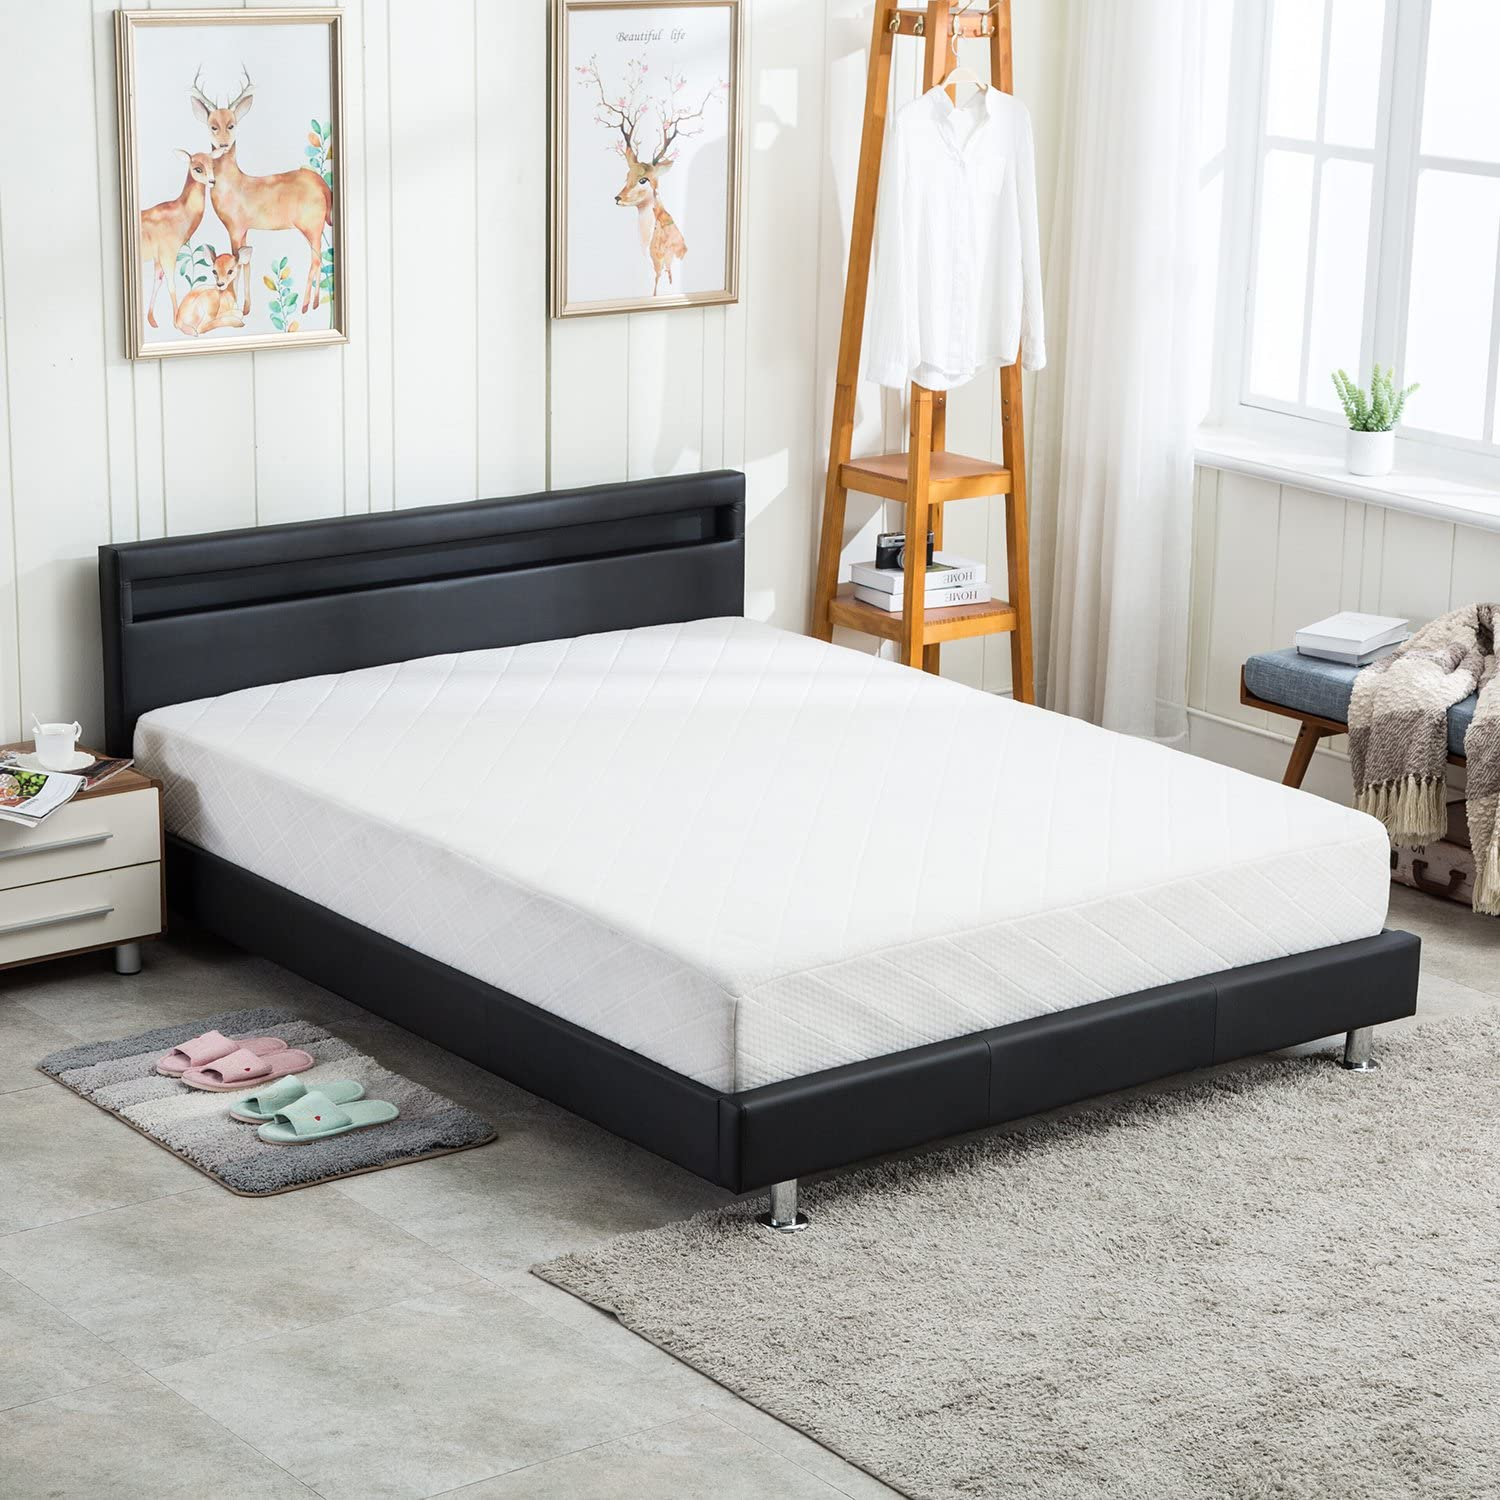 UHOM Modern Home Bedroom Bed Frame Contemporary Wood Steel PU-Leather Bed Multi-Color LED Light Headboard Queen Size Black